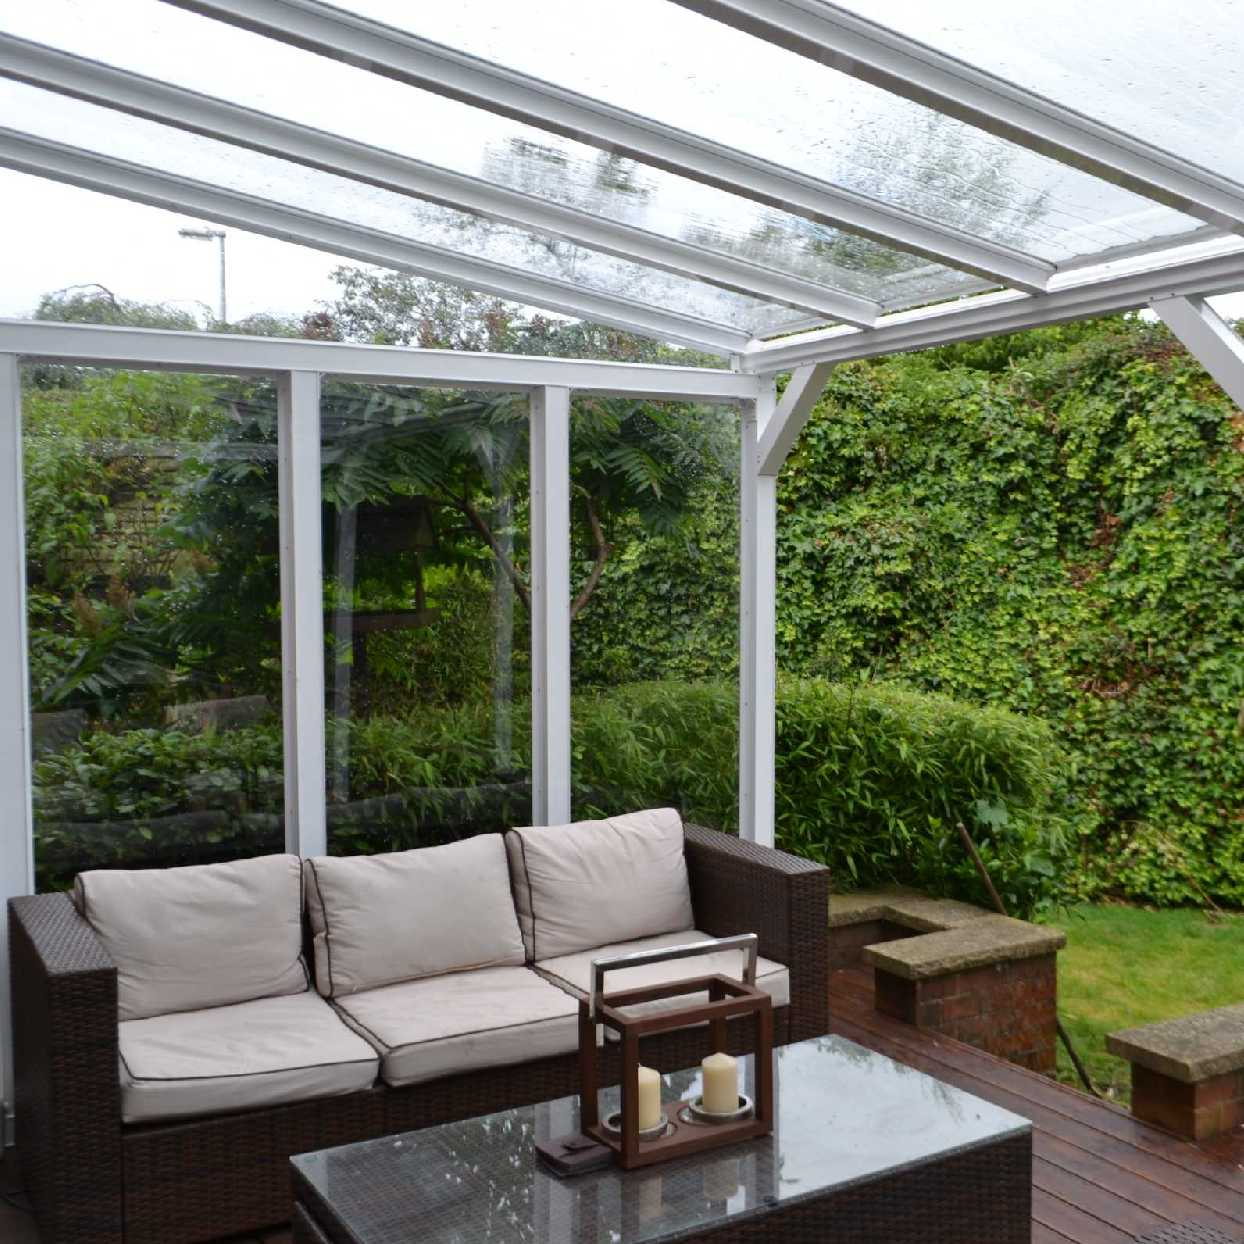 Omega Smart White Lean-To Canopy with 6mm Glass Clear Plate Polycarbonate Glazing - 2.1m (W) x 2.5m (P), (2) Supporting Posts